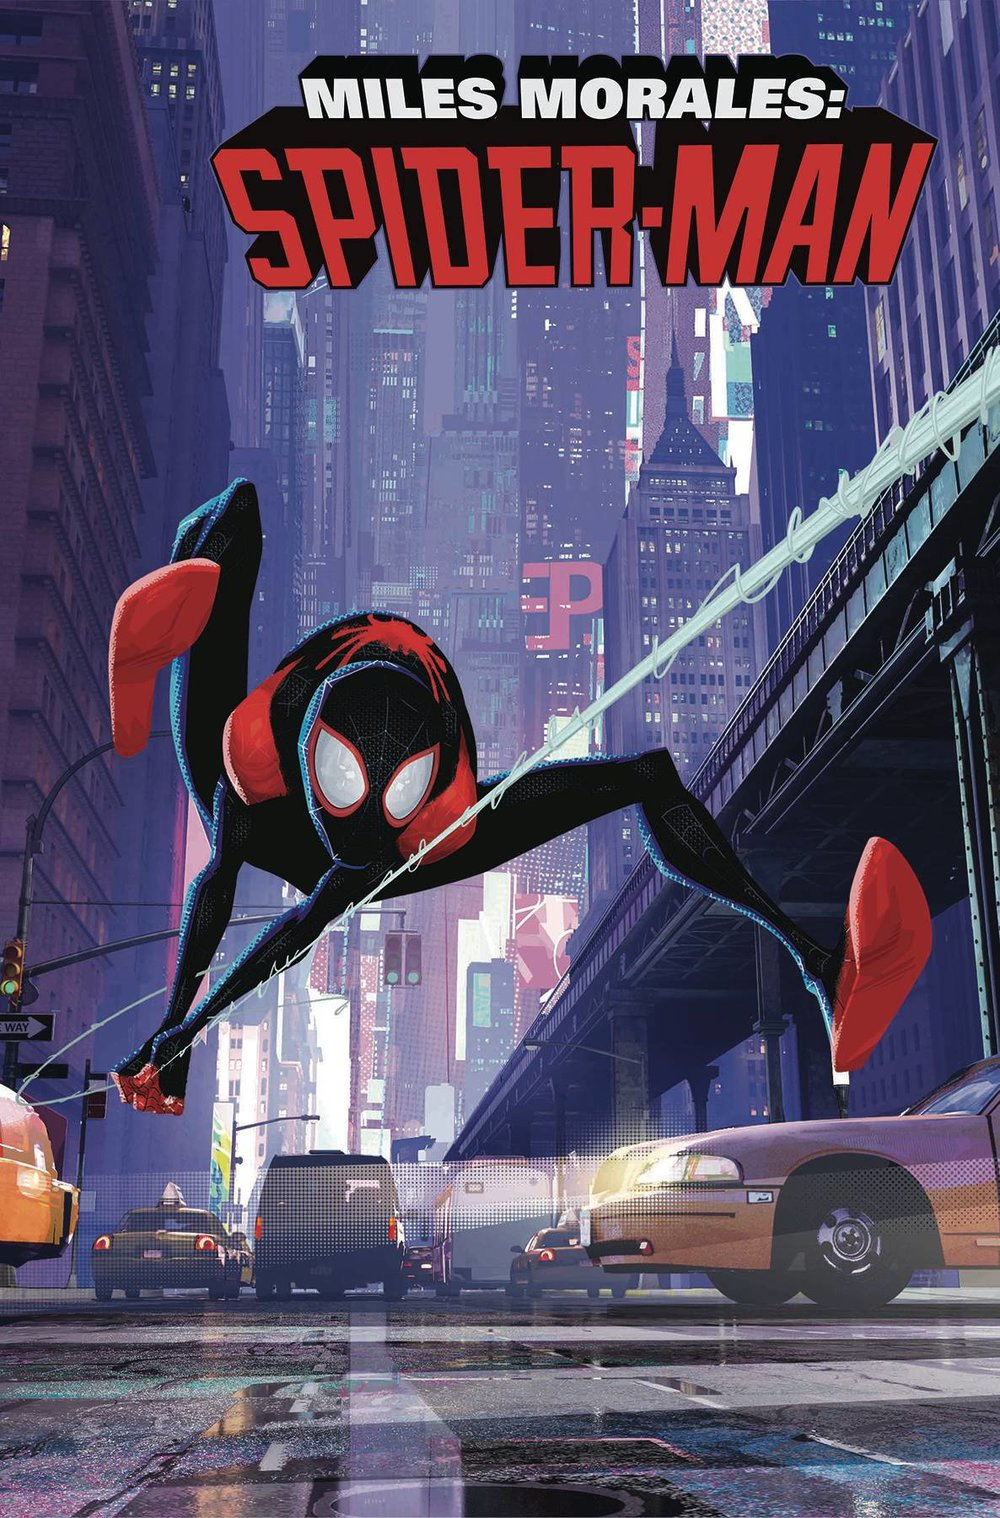 MILES MORALES SPIDER-MAN 1 ANIMATION VAR.jpg